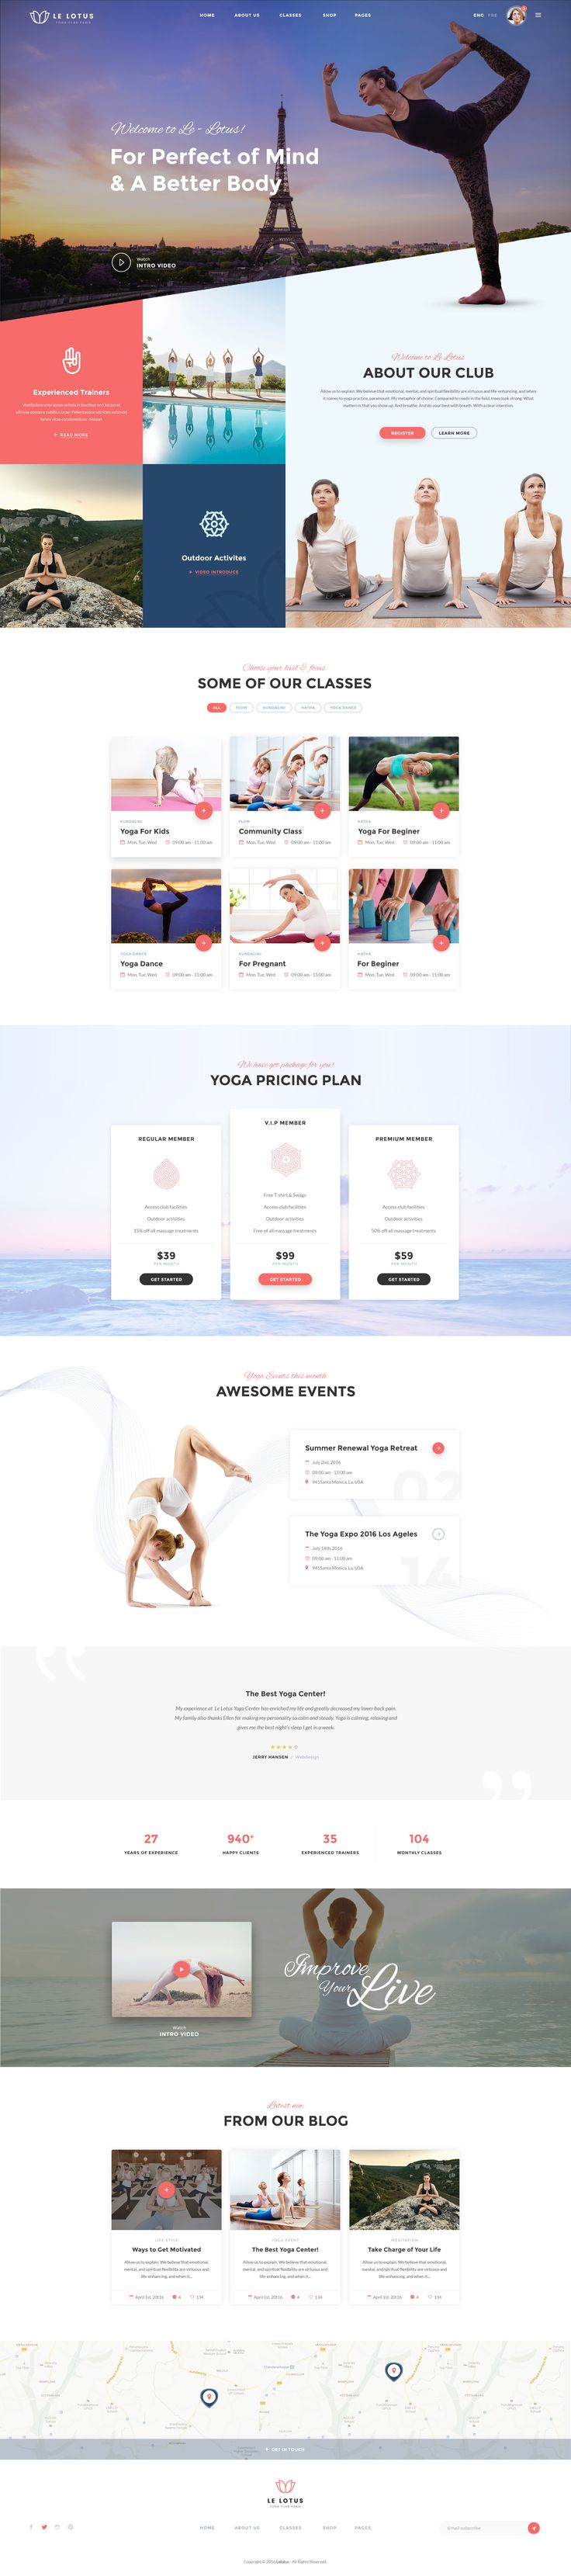 18 best yoga images on Pinterest | Website designs, Design websites ...